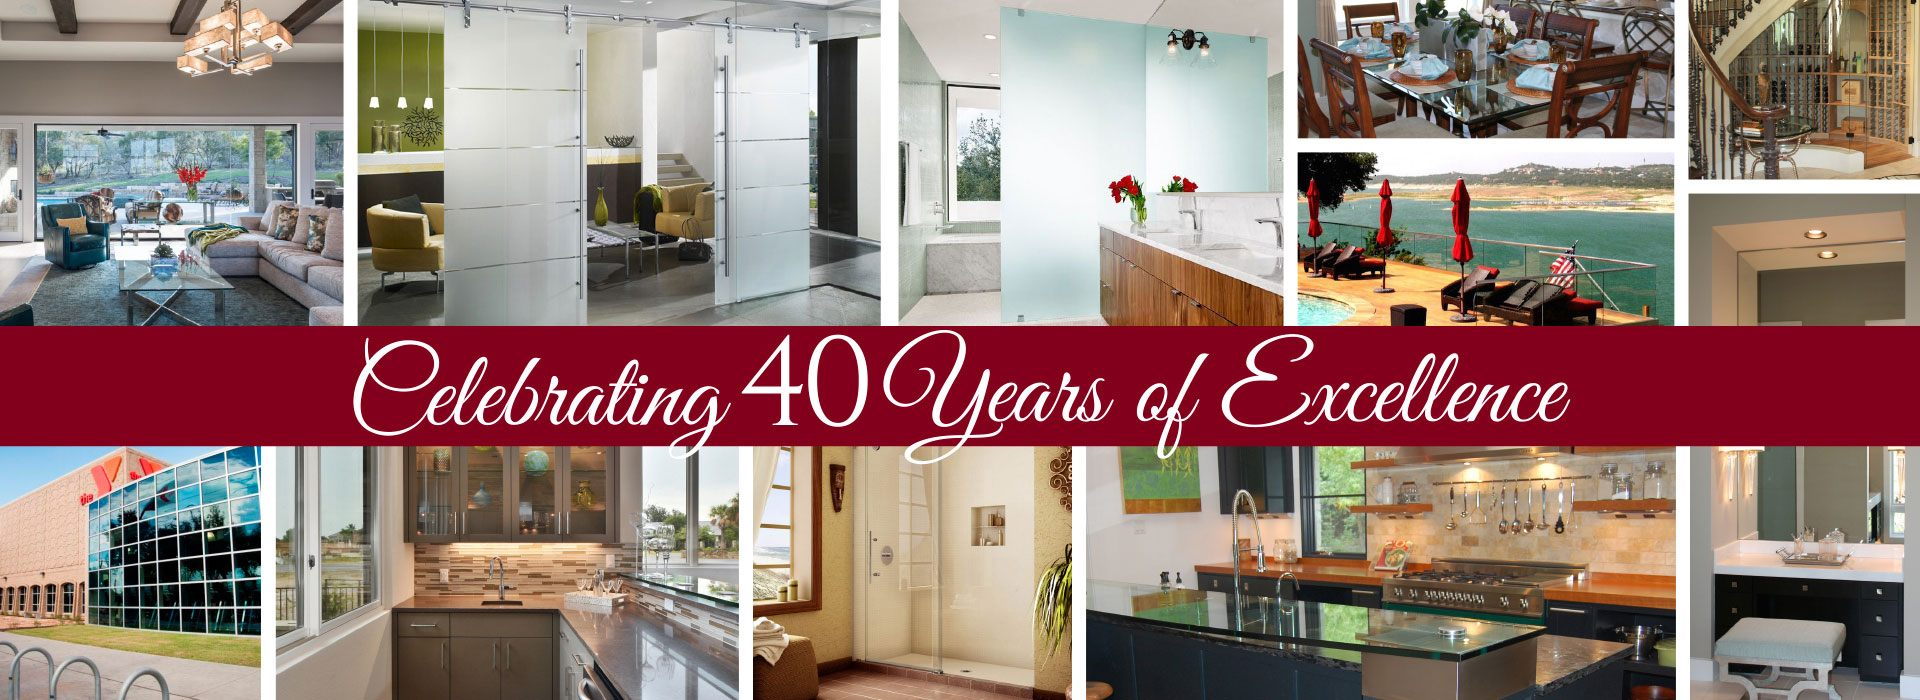 Celebrating 40 Years of Excellence | Anchor-Ventana Logo | We've Got Great Glass | Anchor-Ventana Glass | Austin, Texas